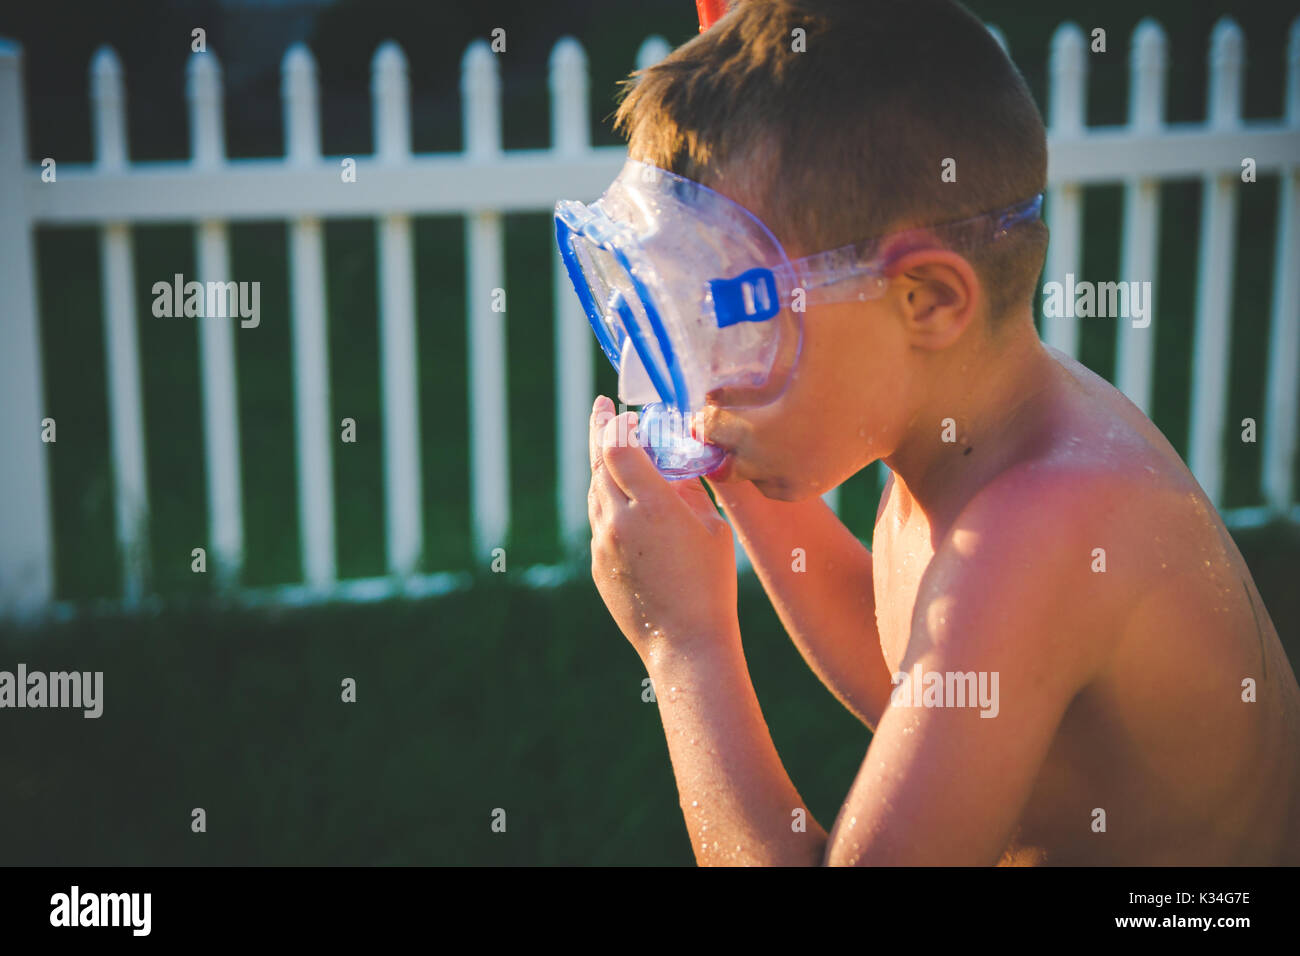 A boy puts on a scuba mask and snorkel during the summer. - Stock Image